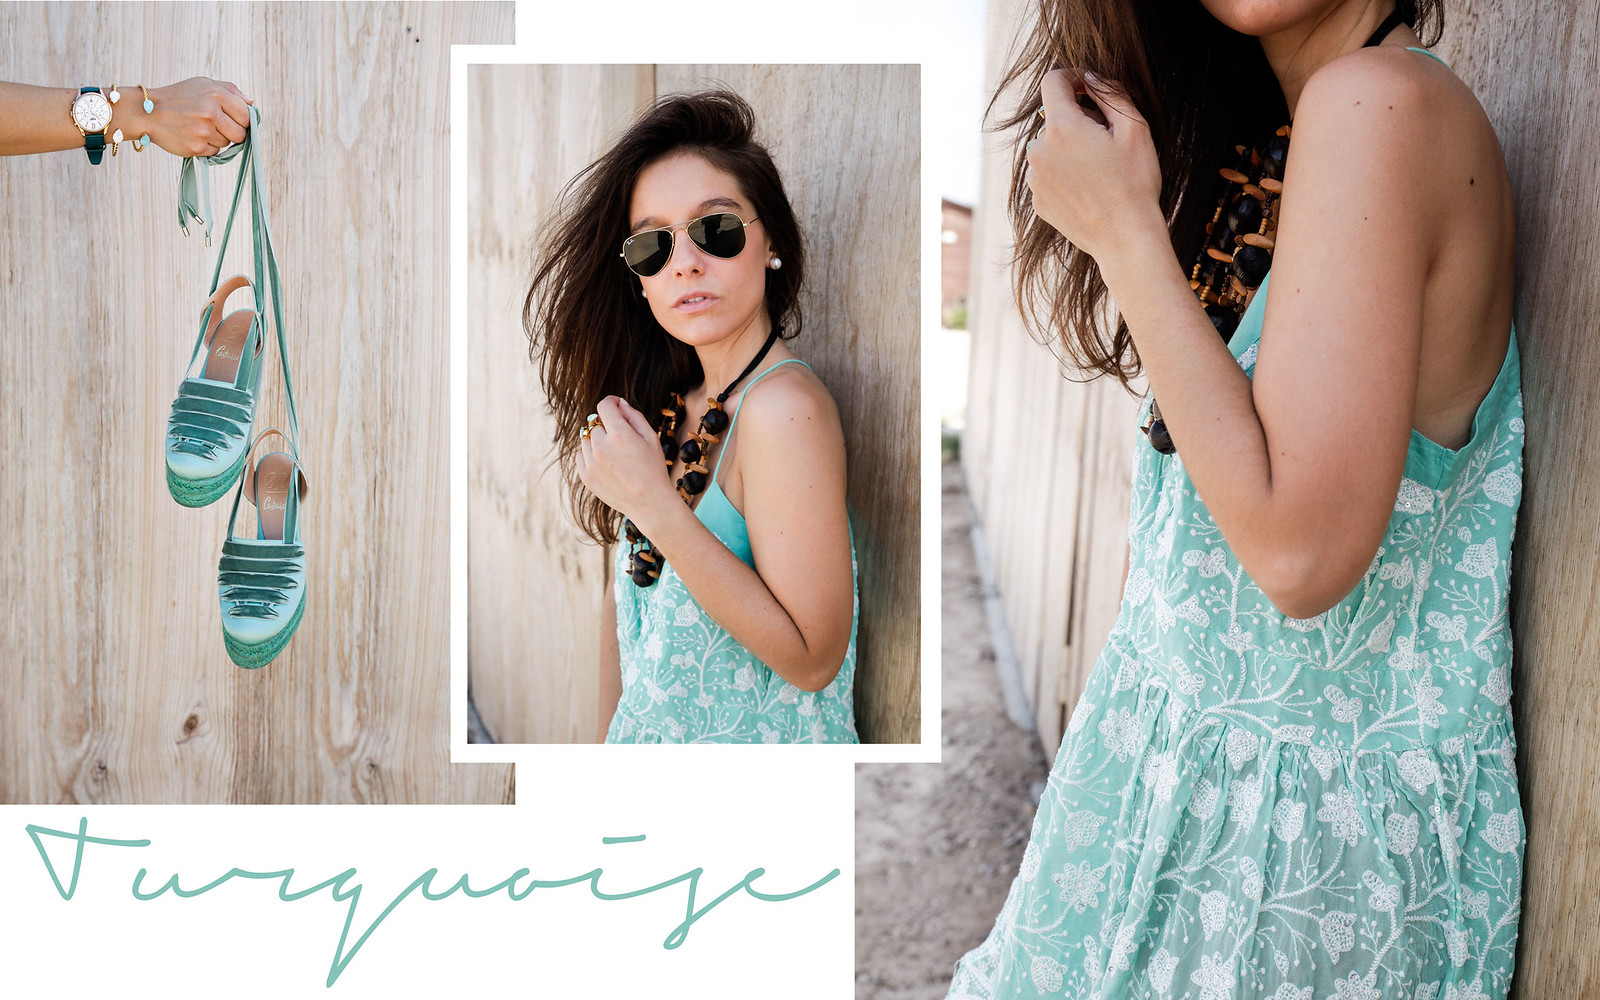 011_turquoise__dress_summer_outfit_miss_june_castañer_cuñas_aguamarina_theguestgirl_influencer_barcelona_laura_santolaria